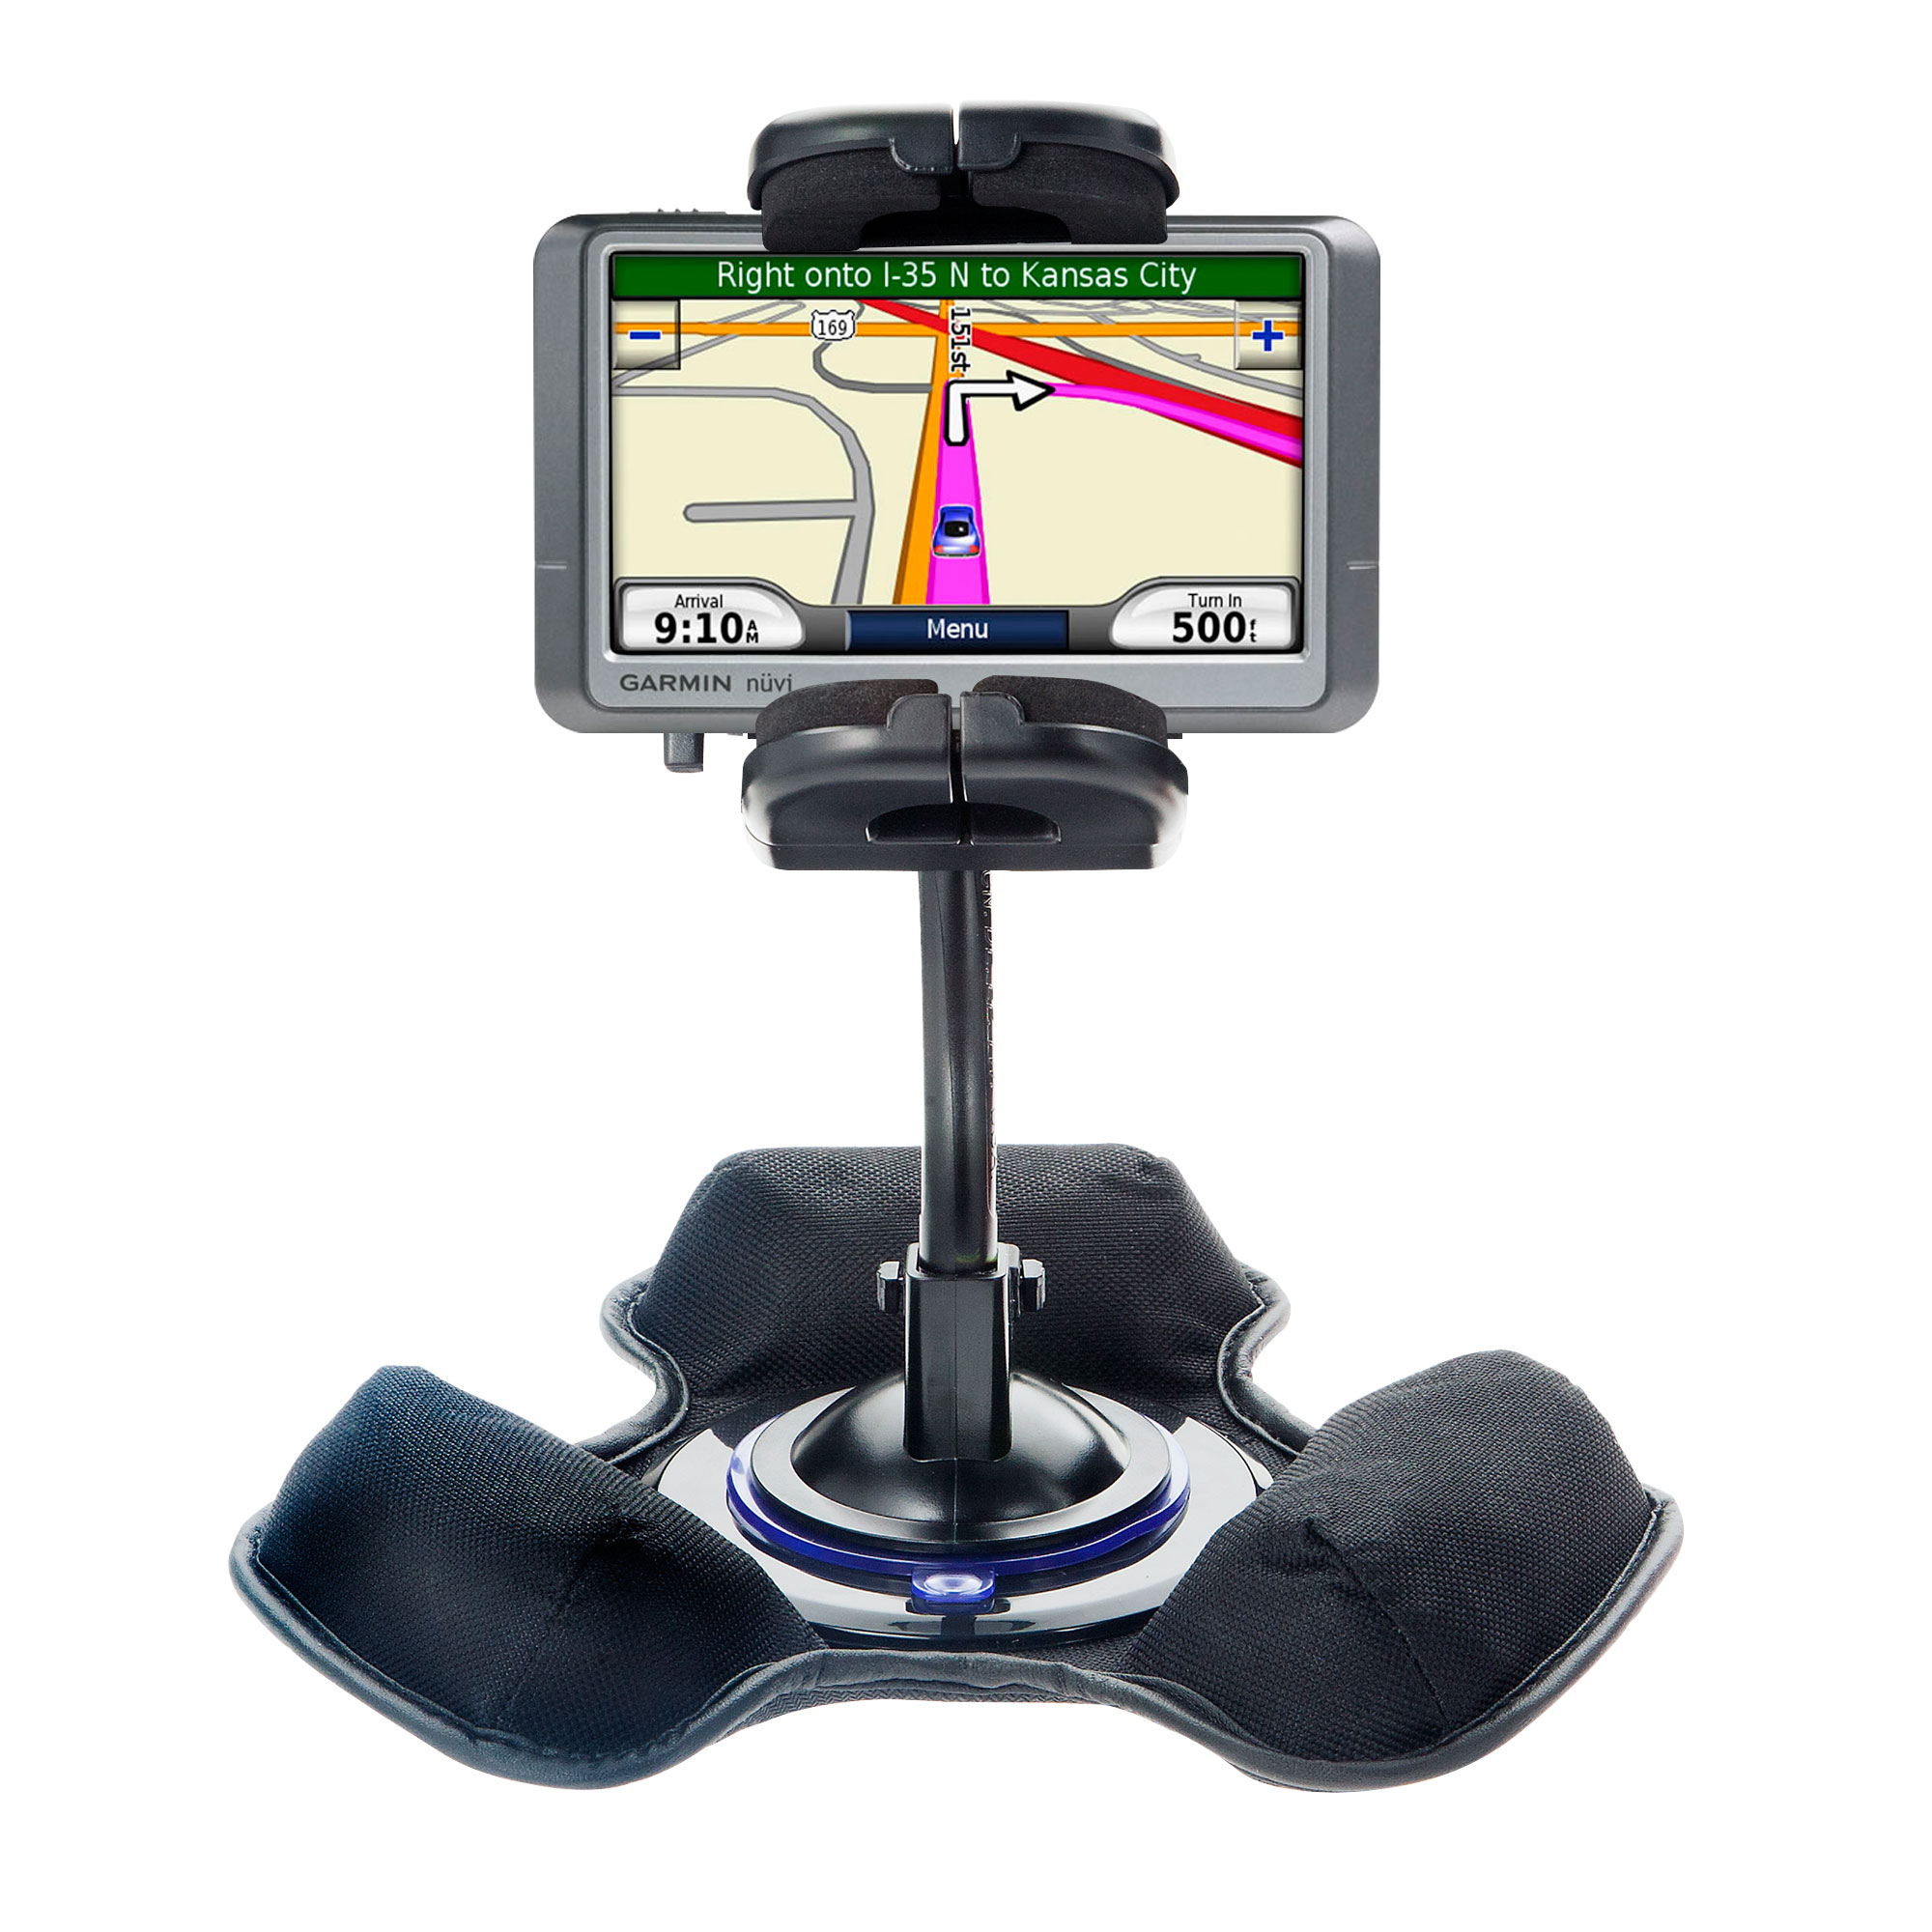 Dash and Windshield Holder compatible with the Garmin Nuvi 200W